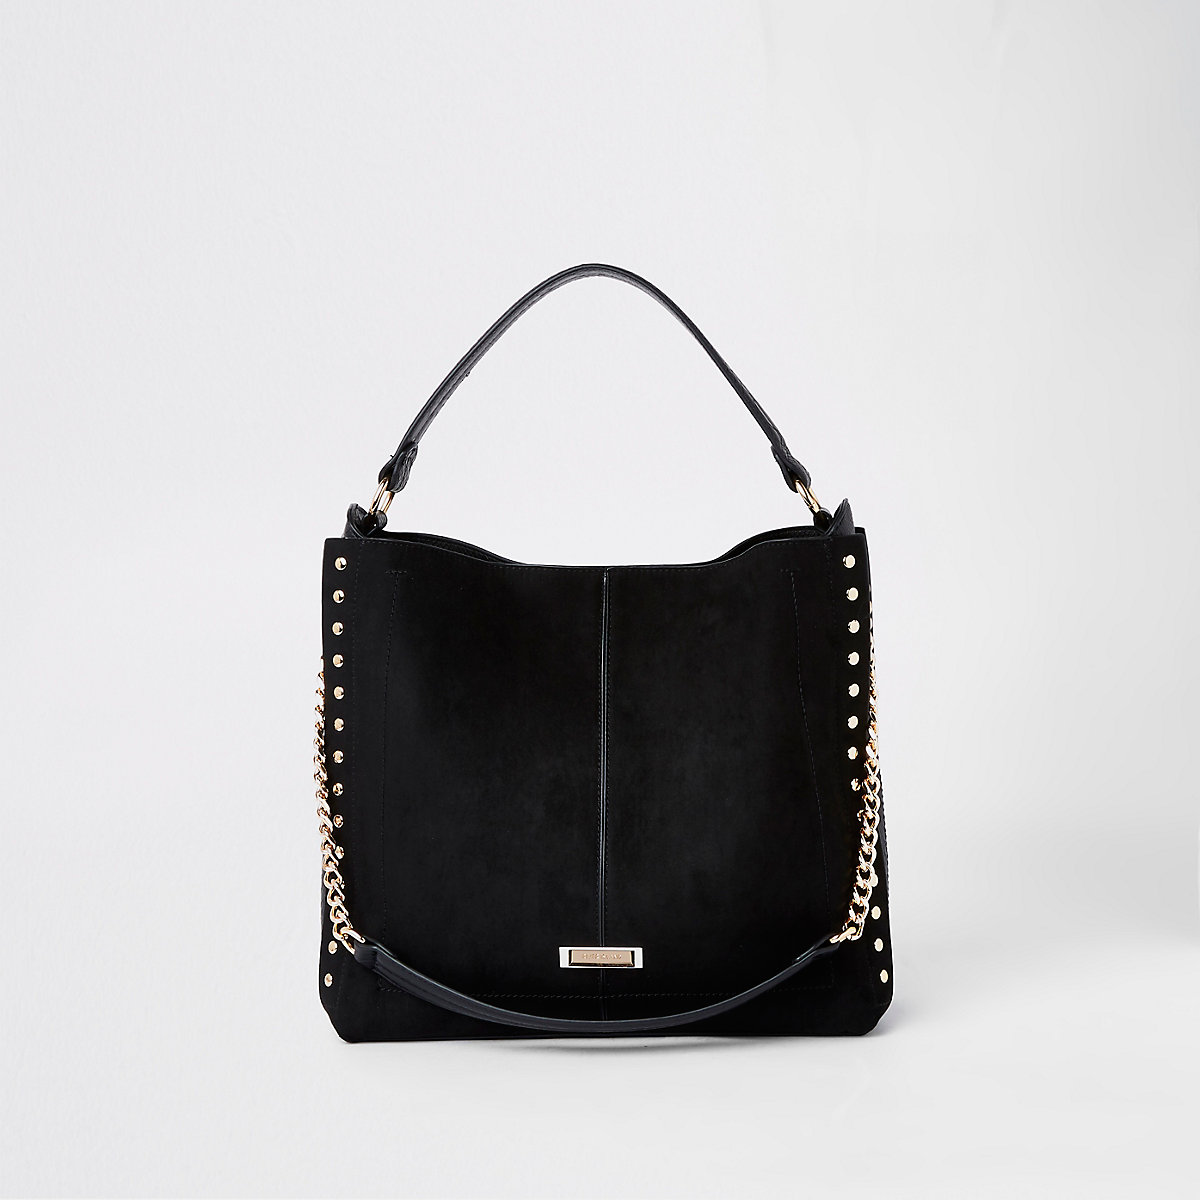 64846a97c7 Black studded side slouch bag - Shoulder Bags - Bags   Purses - women